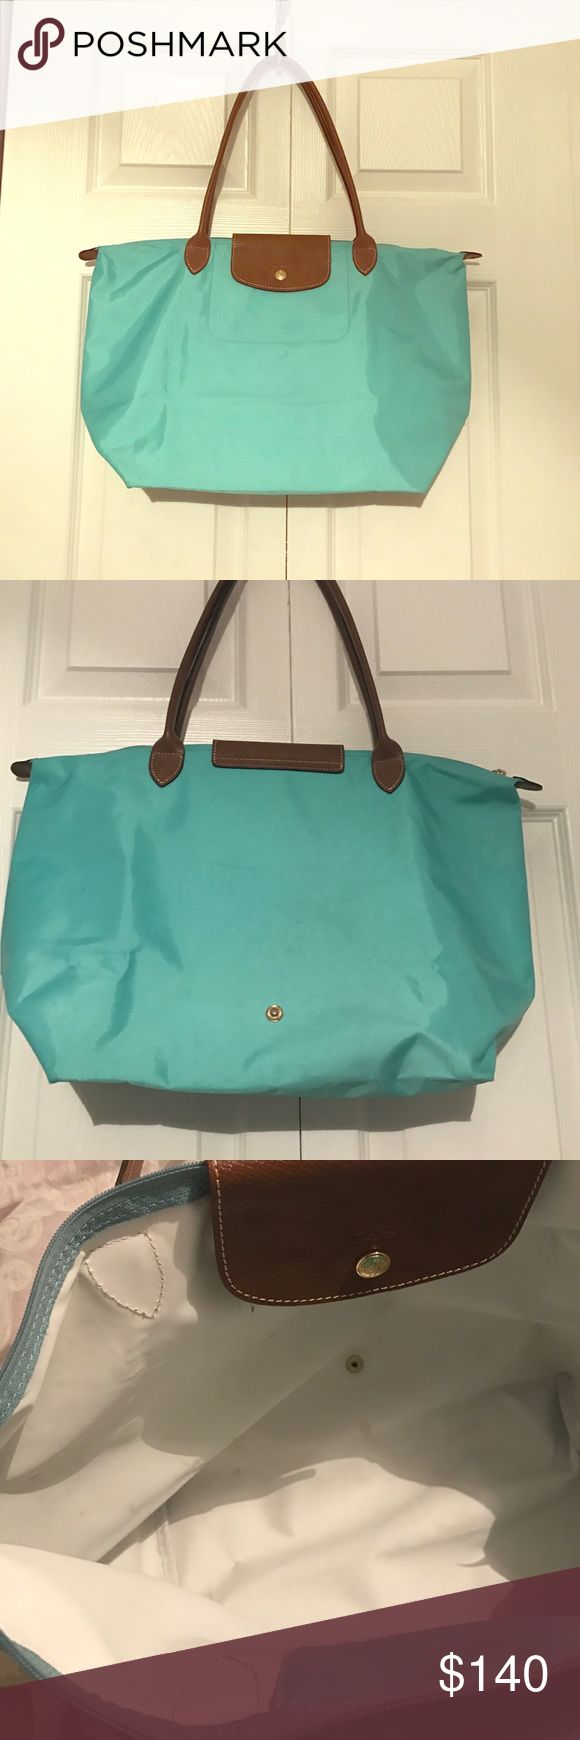 Longchamp Le Pliage Shopping Model Depose Rare Authentic Longchamp Tiffany Blue Le Pliage Shopping Modele Depose. This color is no longer in production and is a very coveted and rare color to find. Gorgeous with long top handles in brown leather. Gently used condition with some light signs of wear on the inside and on the back. Please see the photos and ask any questions! All sales Final. Happy Poshing 🎀 Longchamp Bags Totes